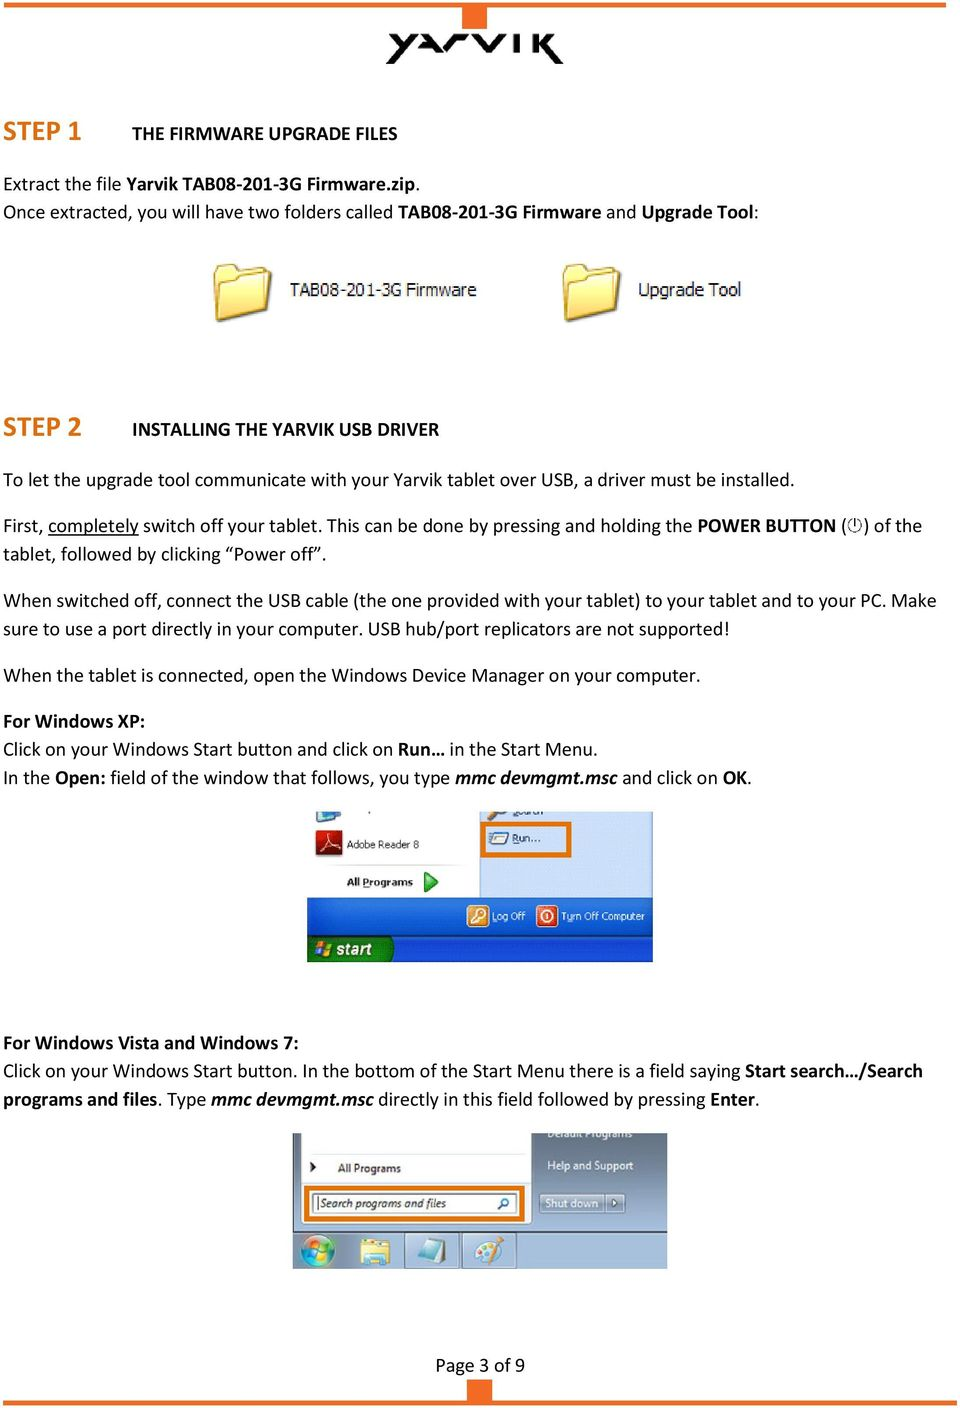 TAB G XENTA 8c 8 3G TABLET FIRMWARE UPGRADE INSTRUCTIONS - PDF